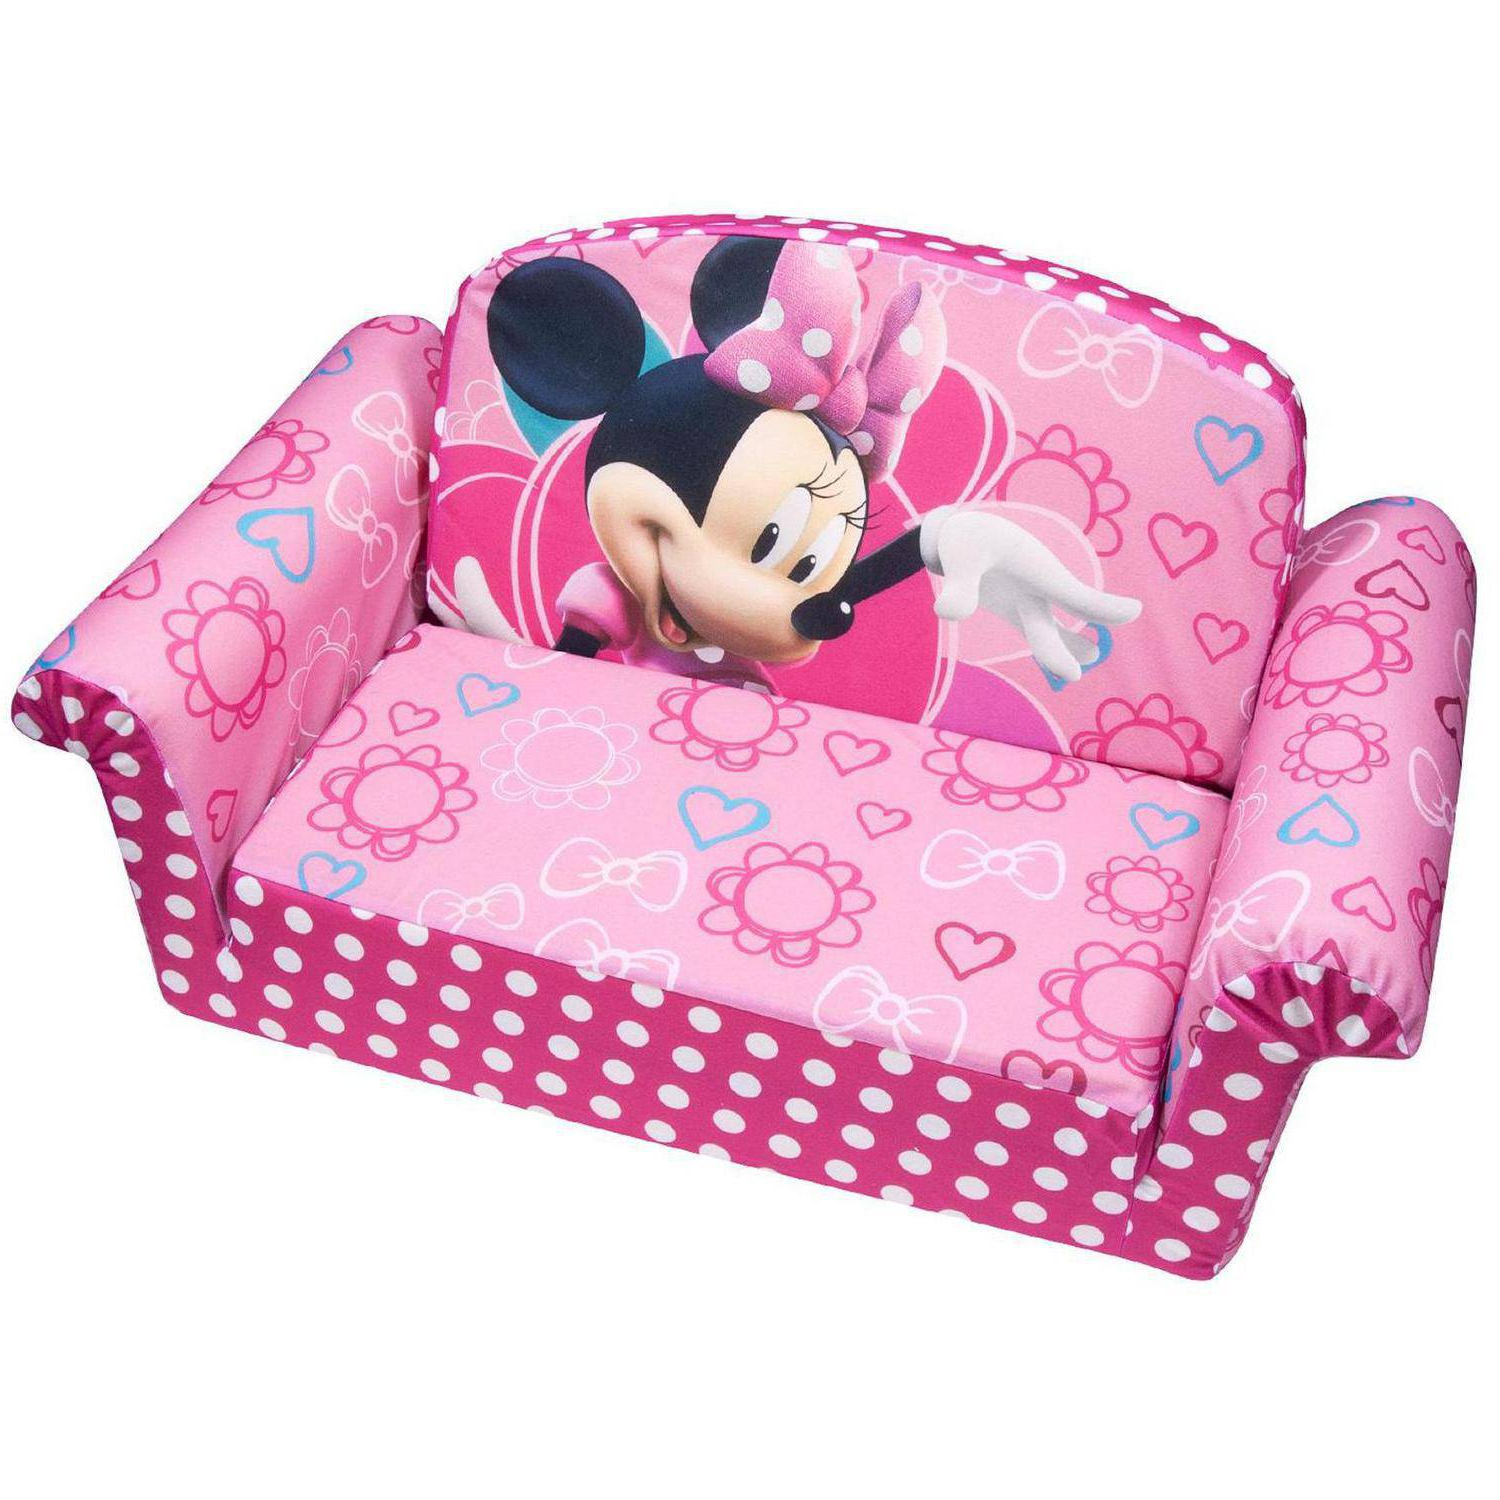 2019 Marshmallow Furniture, Children's 2 In 1 Flip Open Foam Sofa Intended For Toddler Sofa Chairs (View 19 of 20)